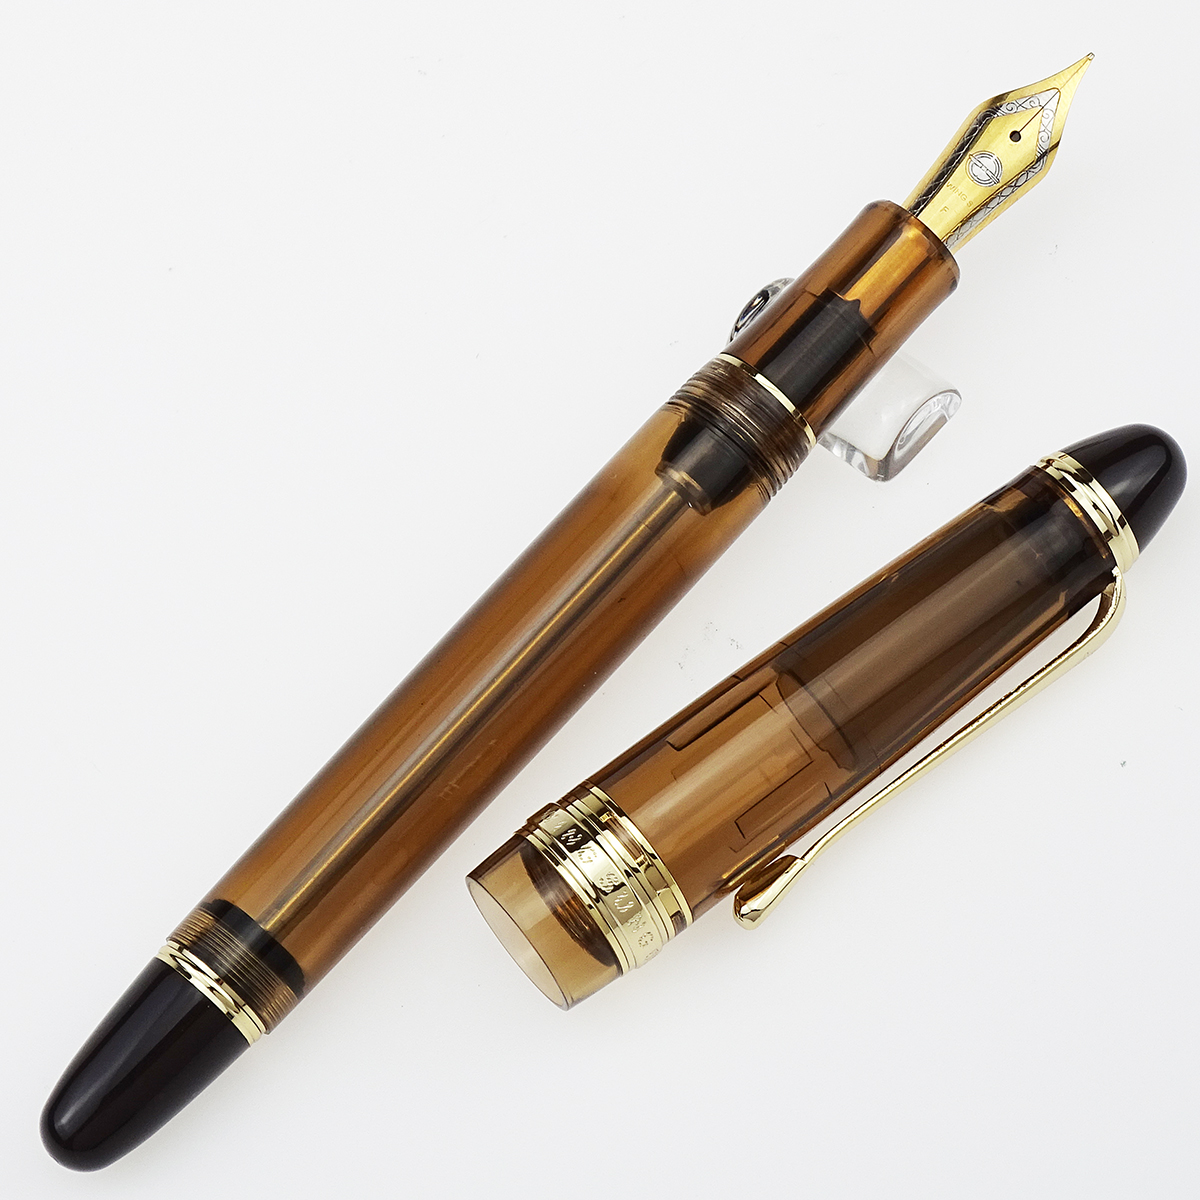 Wing Sung 699 Vacuum Filling Fountain Pen Wingsung Transparent Brown Acrylic With Box - EF/ Fine / Medium / Bent Nib Office Gift